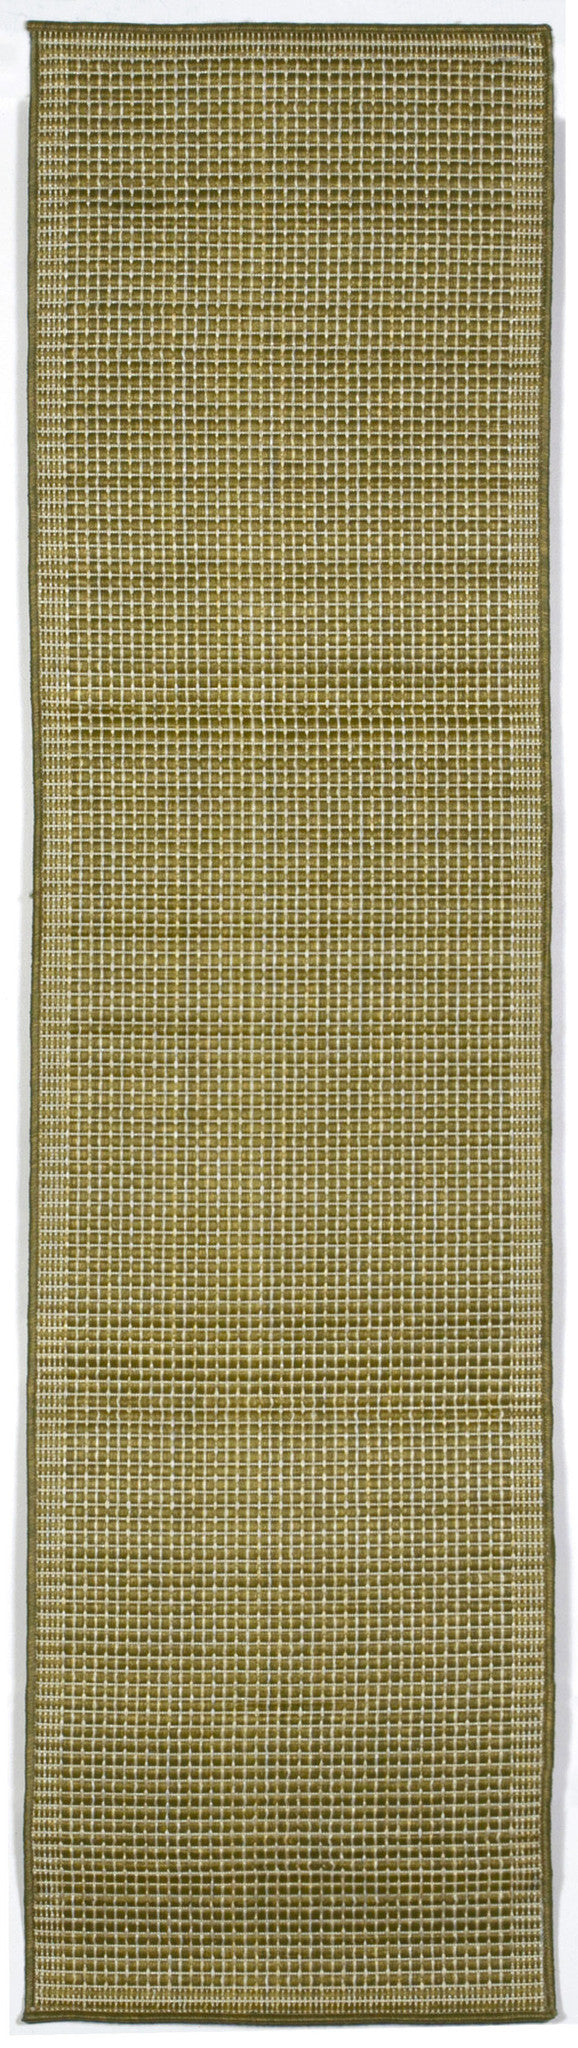 "Texture Green/Iv 23"" x 7'6"" Indoor/Outdoor Flatweave Rug"